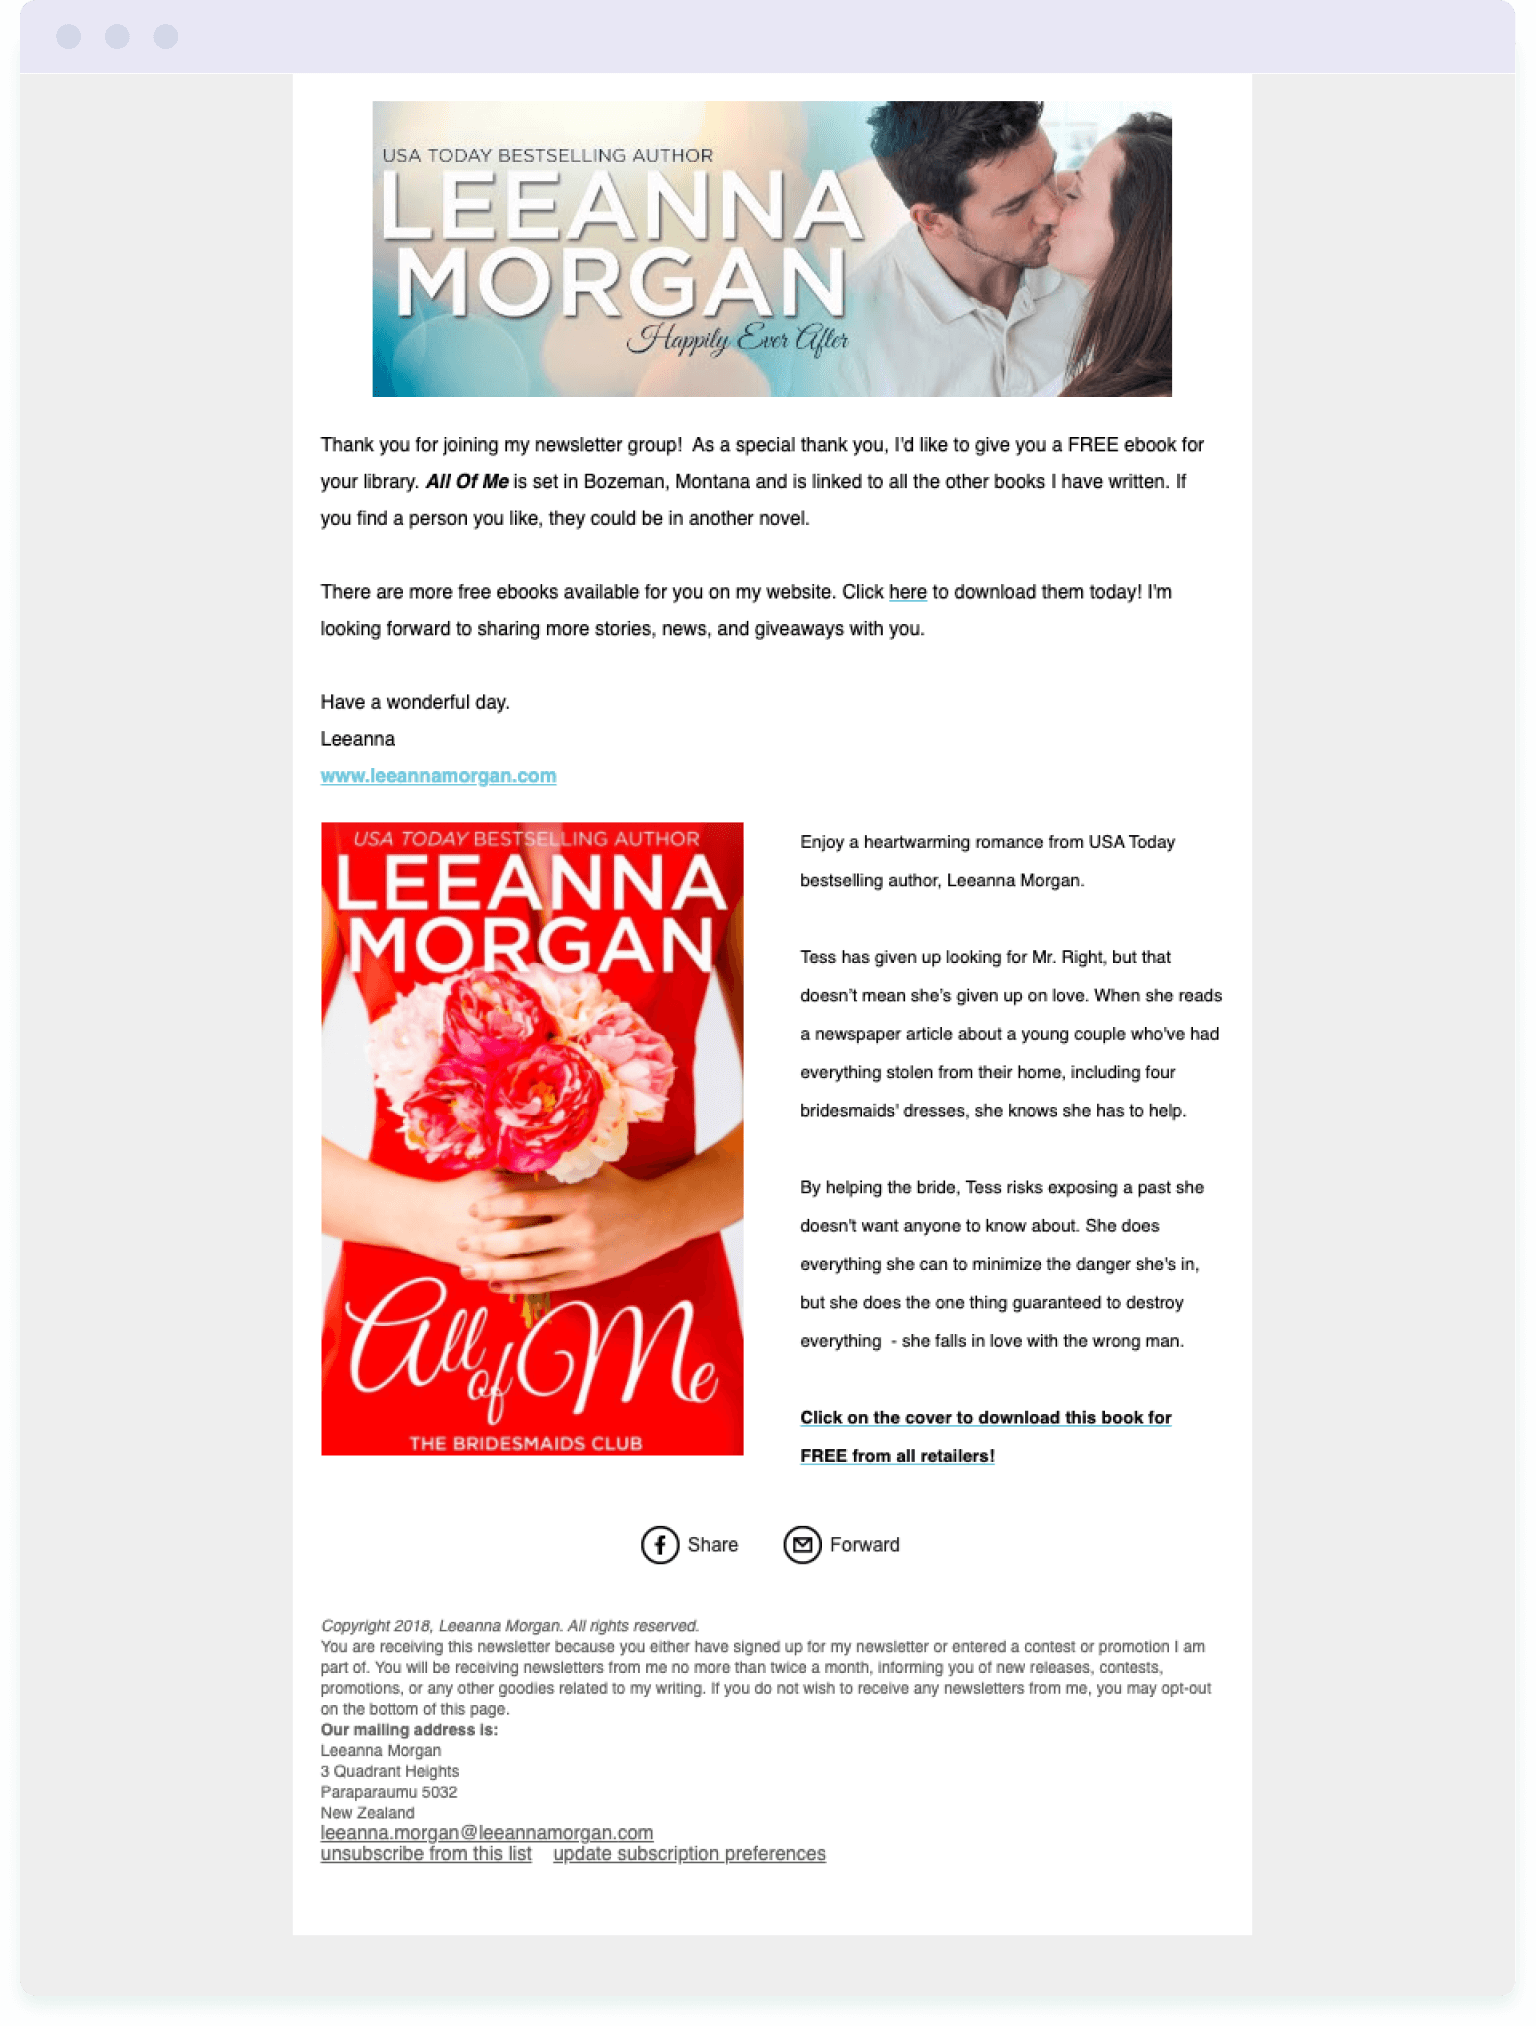 The welcome email sent to new subscribers from author Leanna Morgan – an important step in building an author's email list